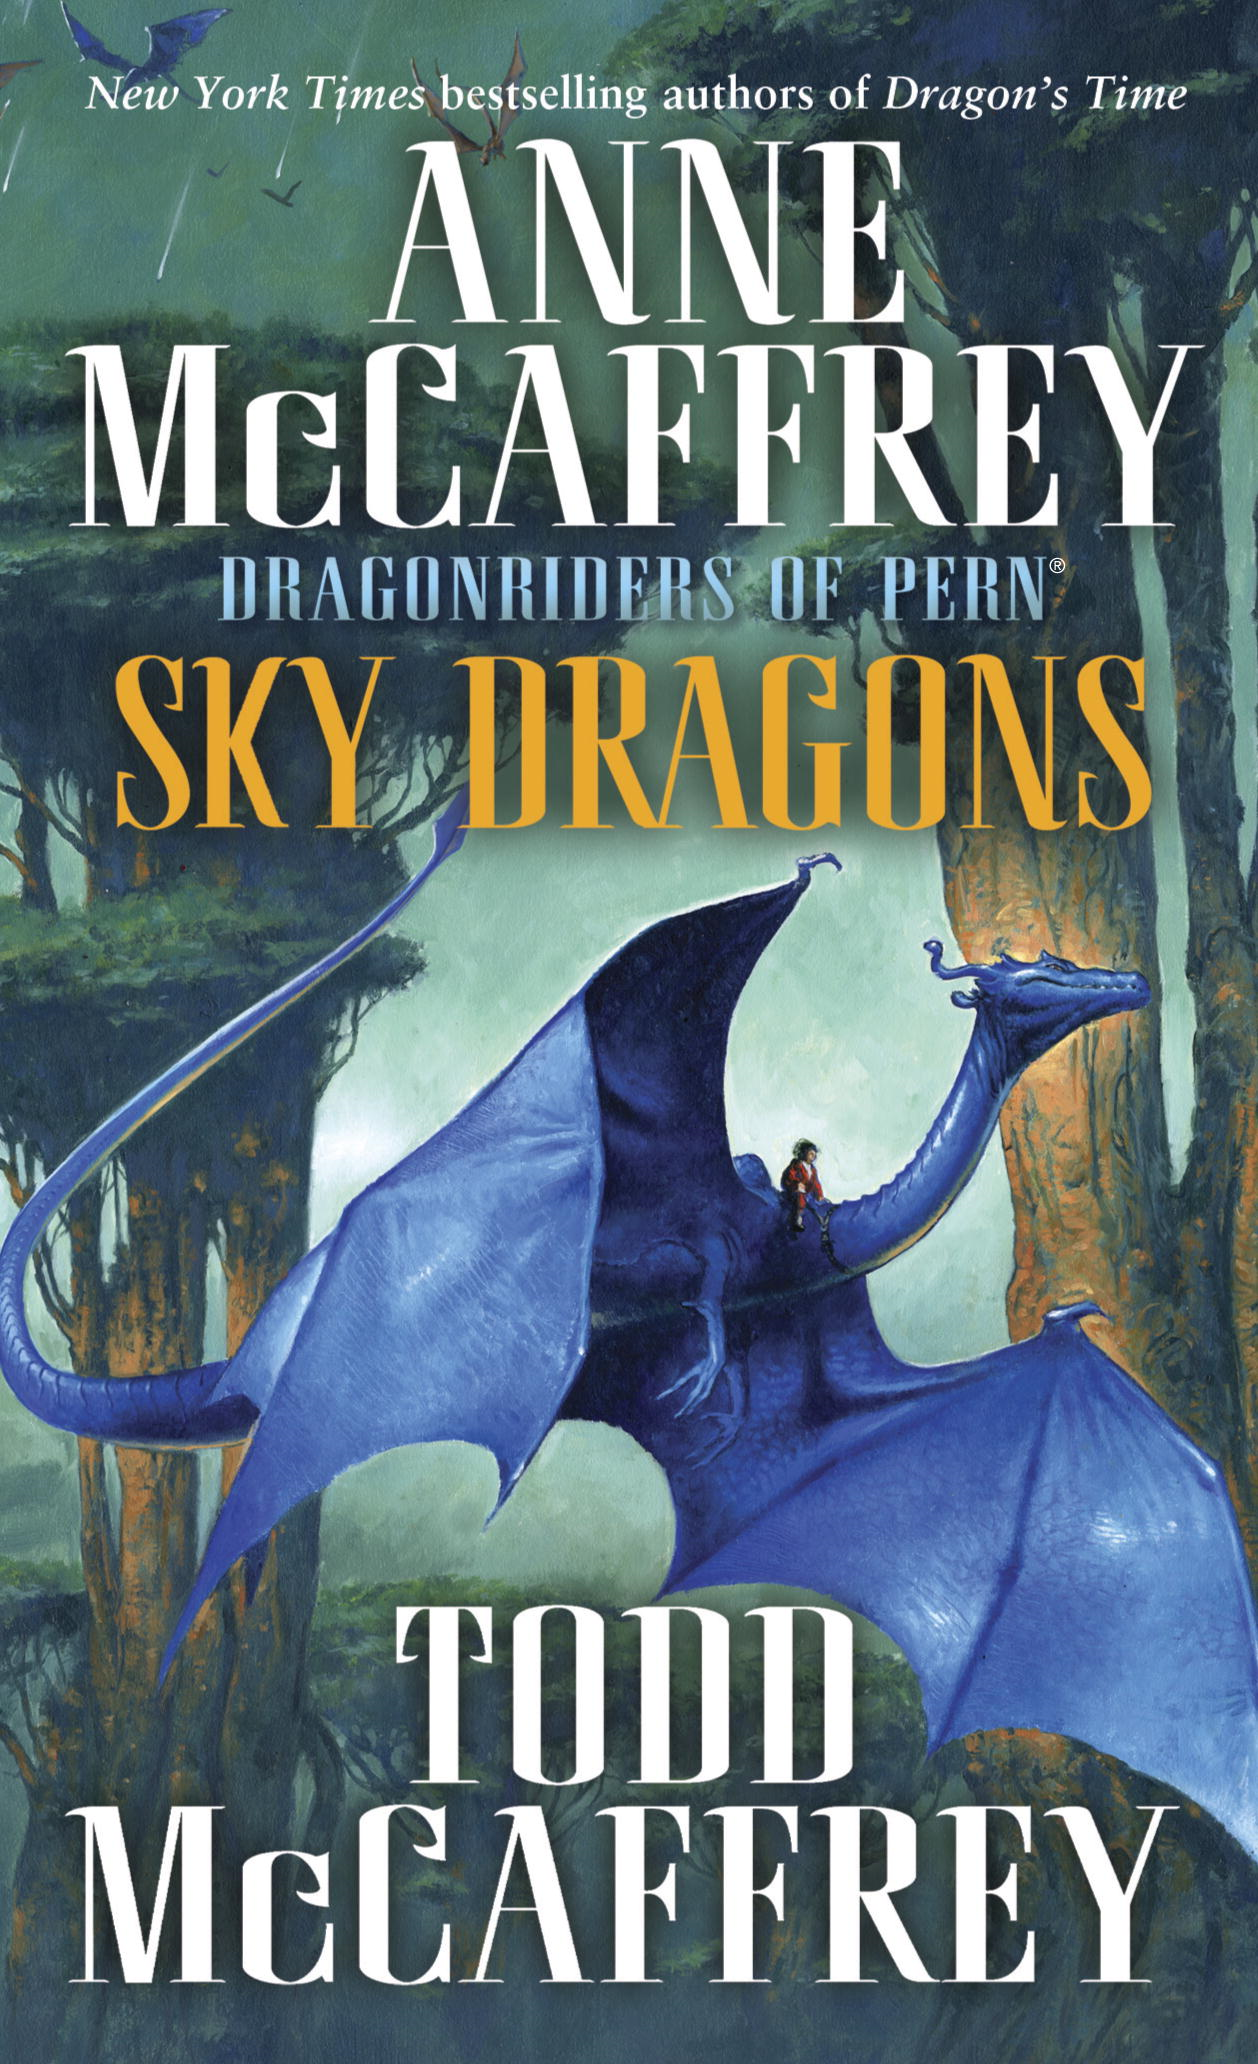 Sky Dragons: Dragonriders of Pern By: Anne McCaffrey,Todd J. McCaffrey